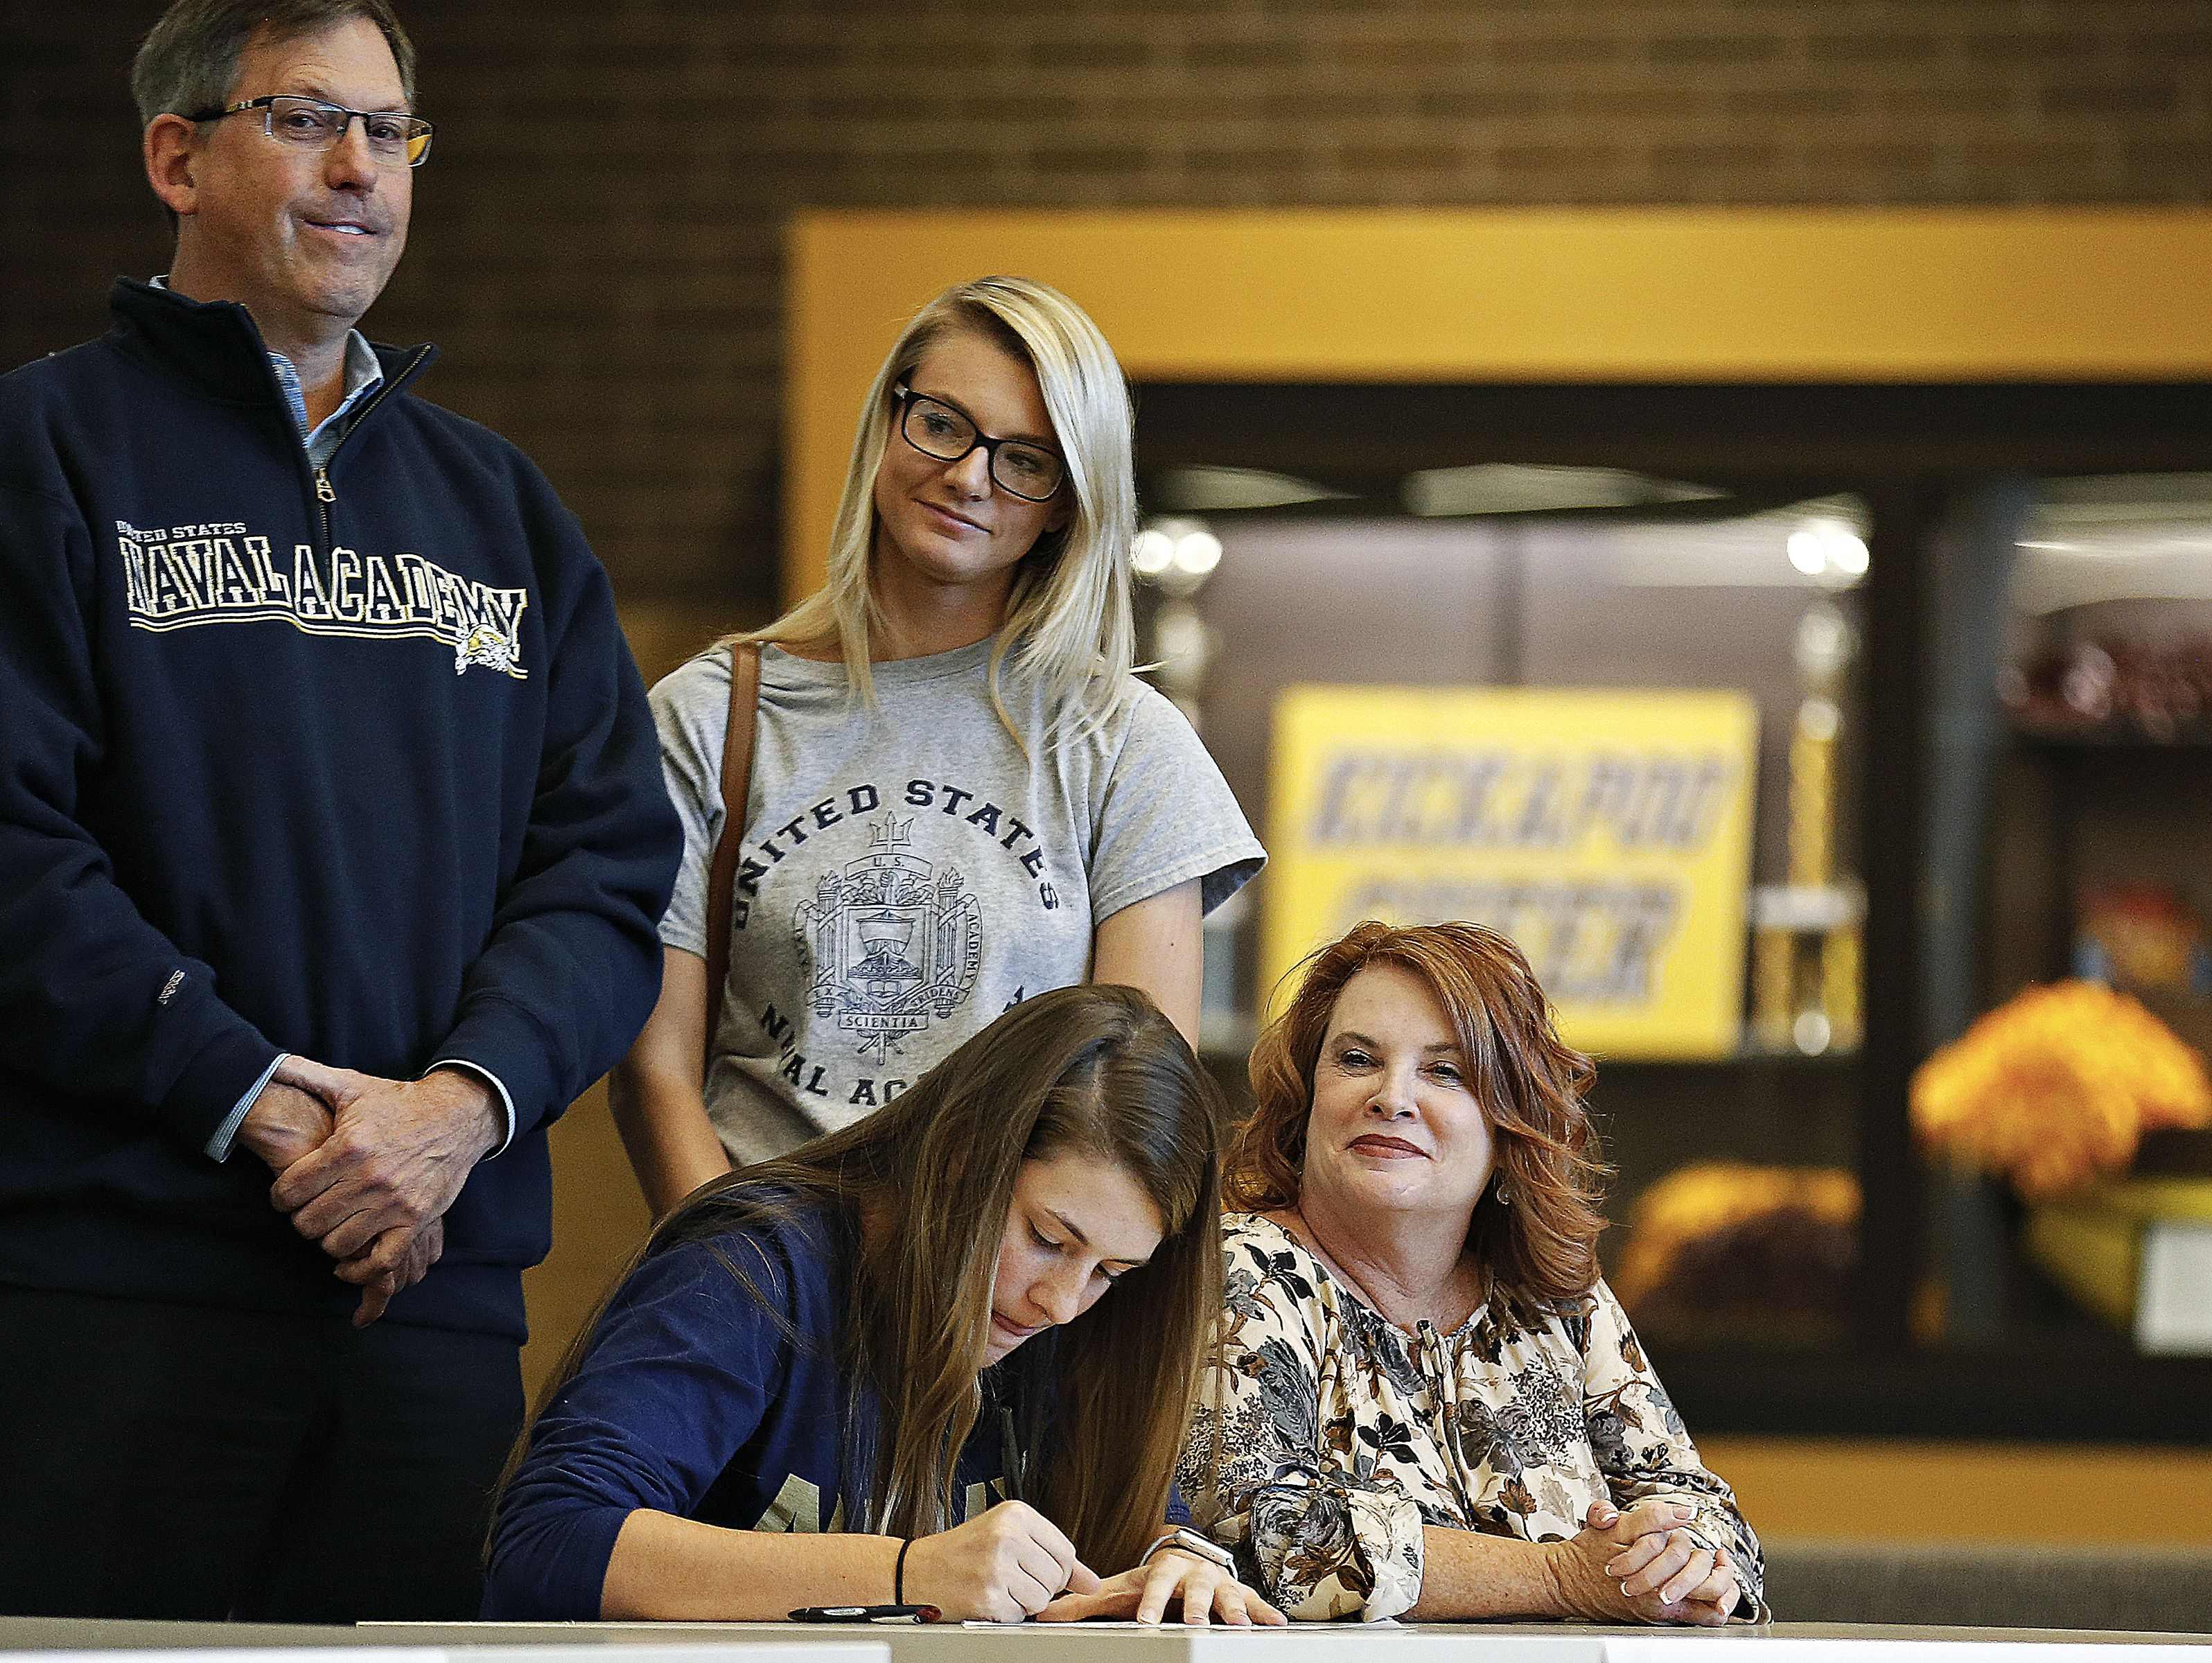 Ari Acuff signs a national letter of intent to the Naval Academy during a National Signing Day event held for Chiefs athletes at Kickapoo High School in Springfield, Mo. on Nov. 9, 2016.